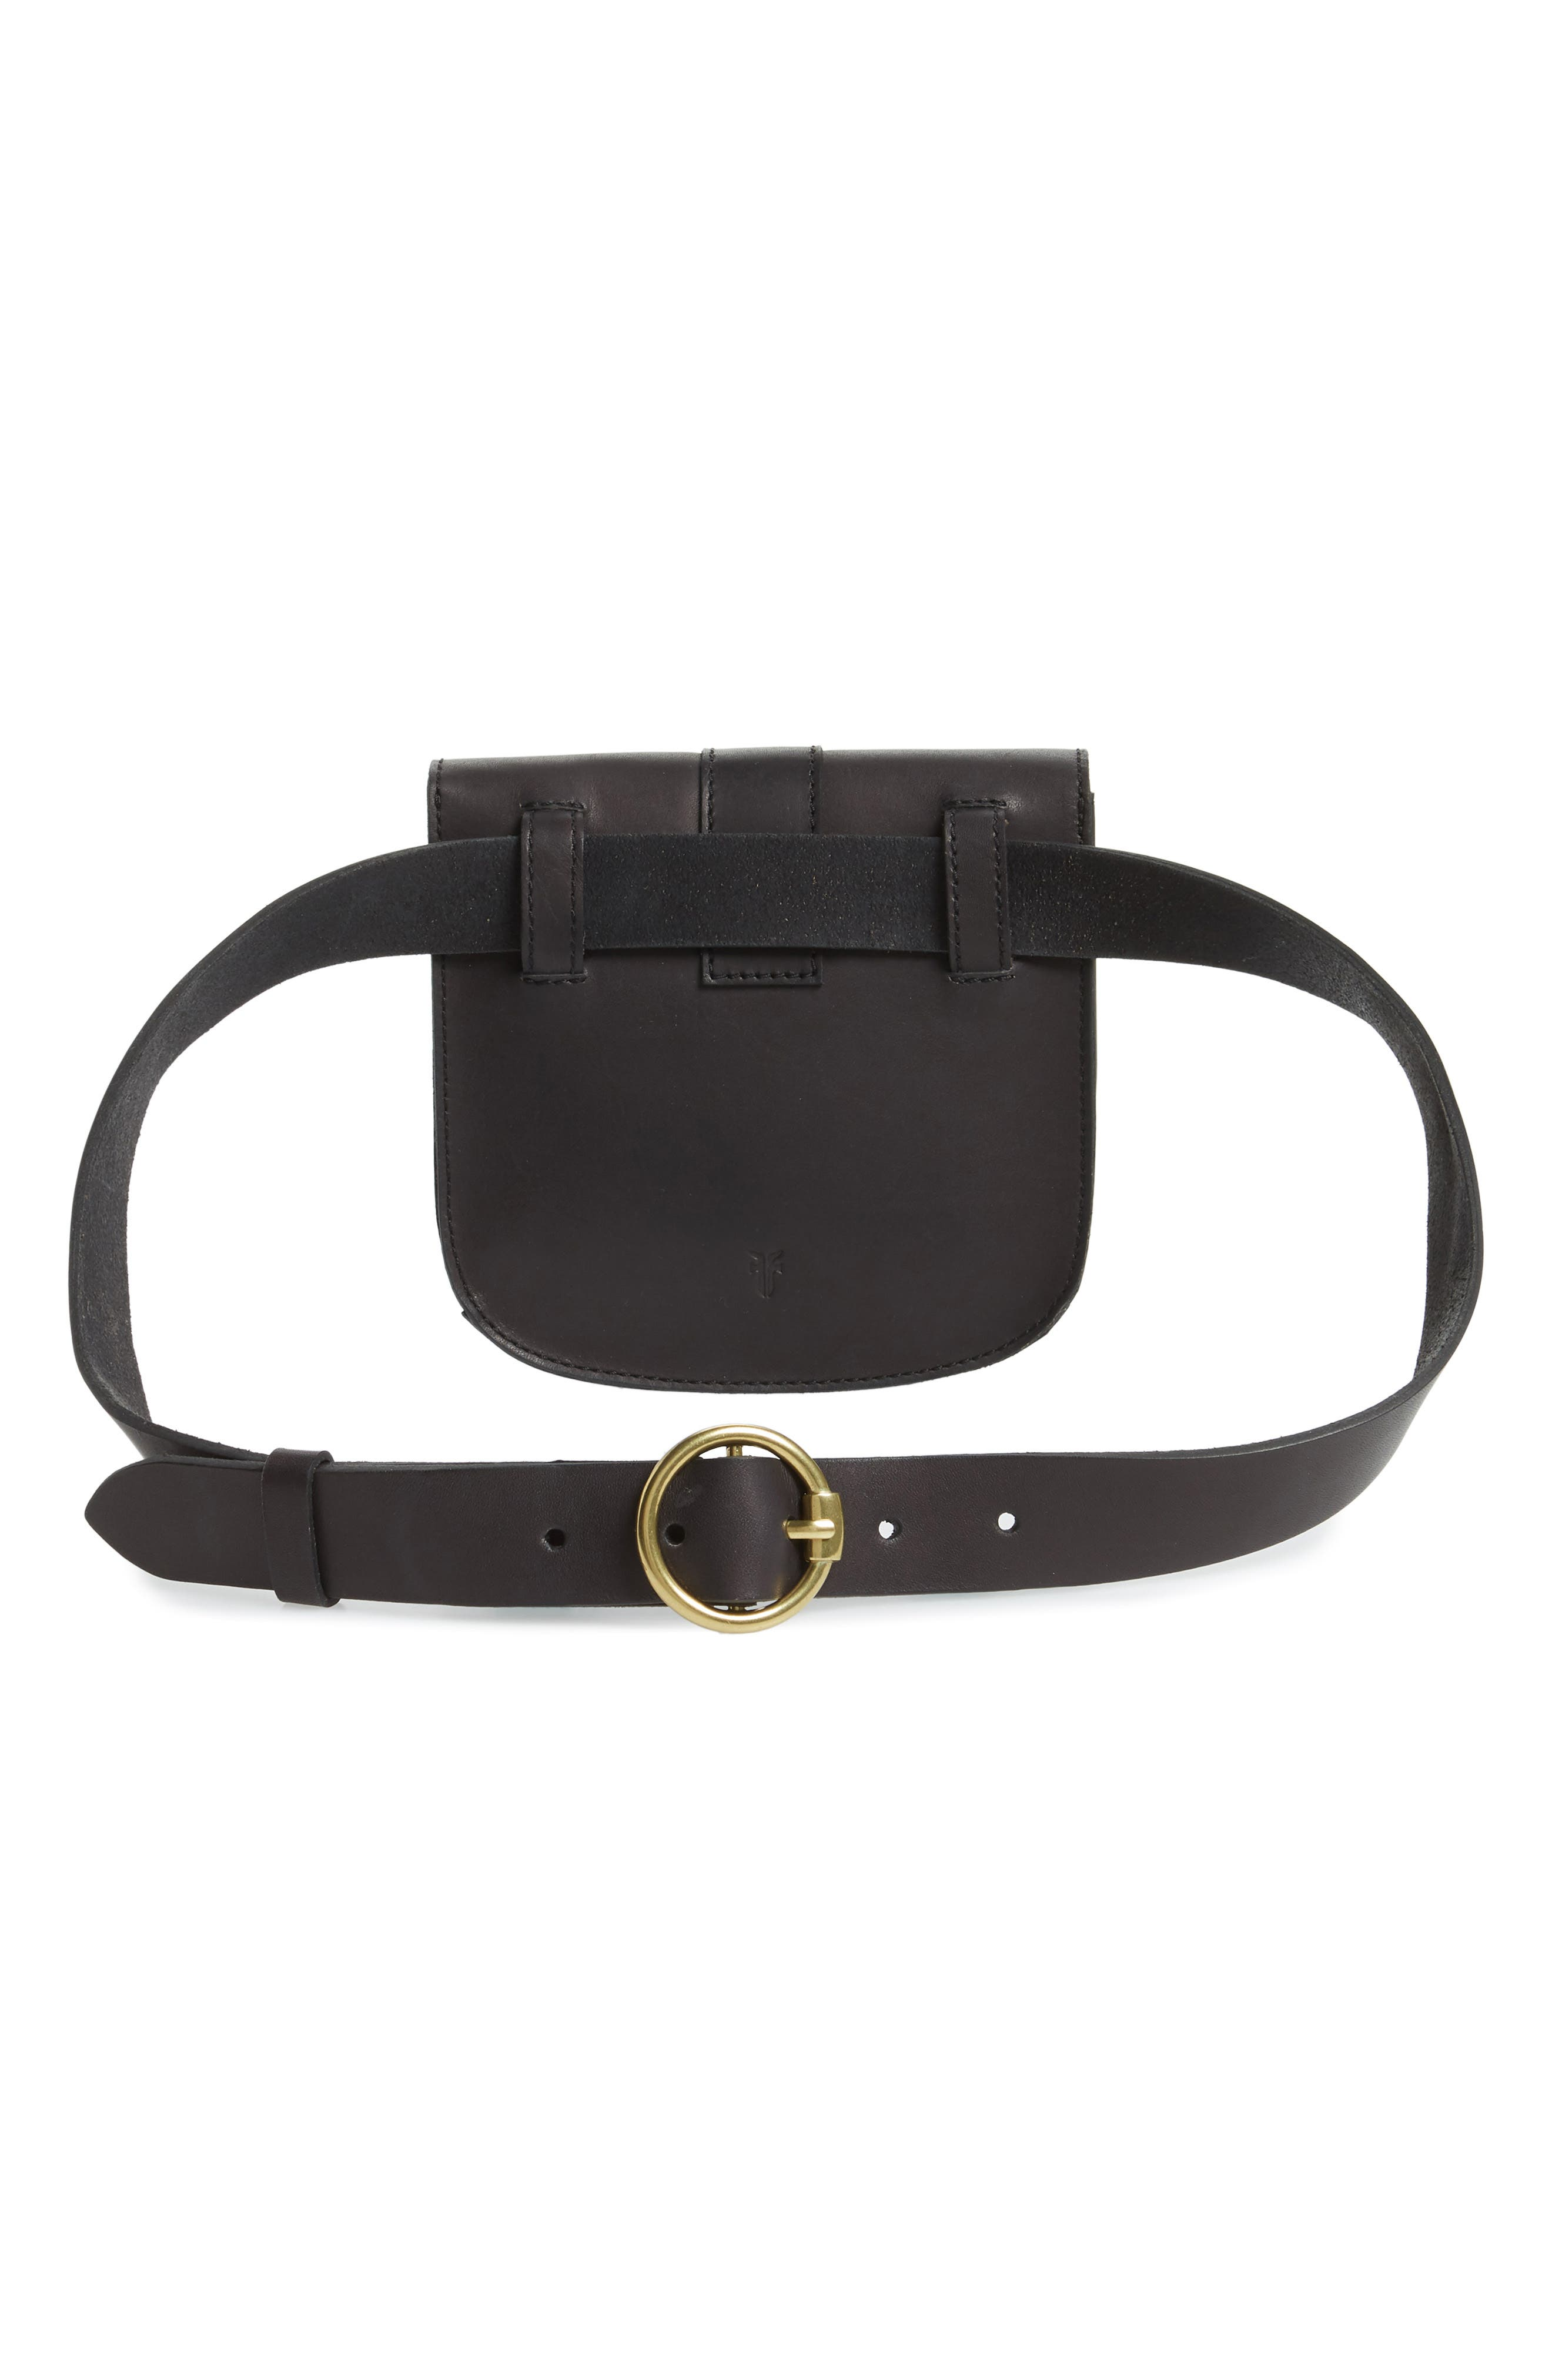 Leather Belt Bag,                             Alternate thumbnail 4, color,                             BLACK/ ECRU STITCH